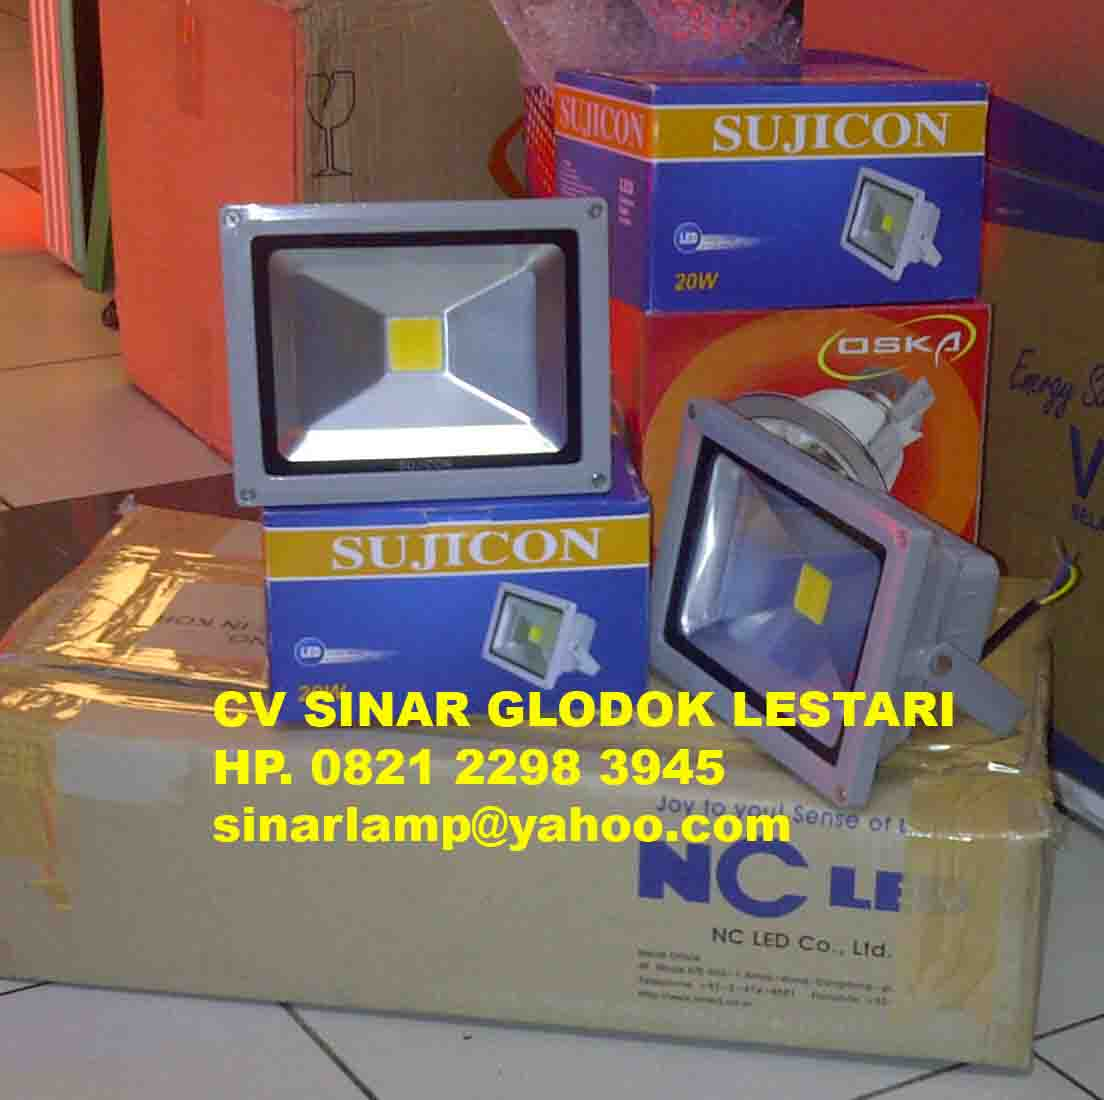 Lampu Sorot LED 20W SUJICON